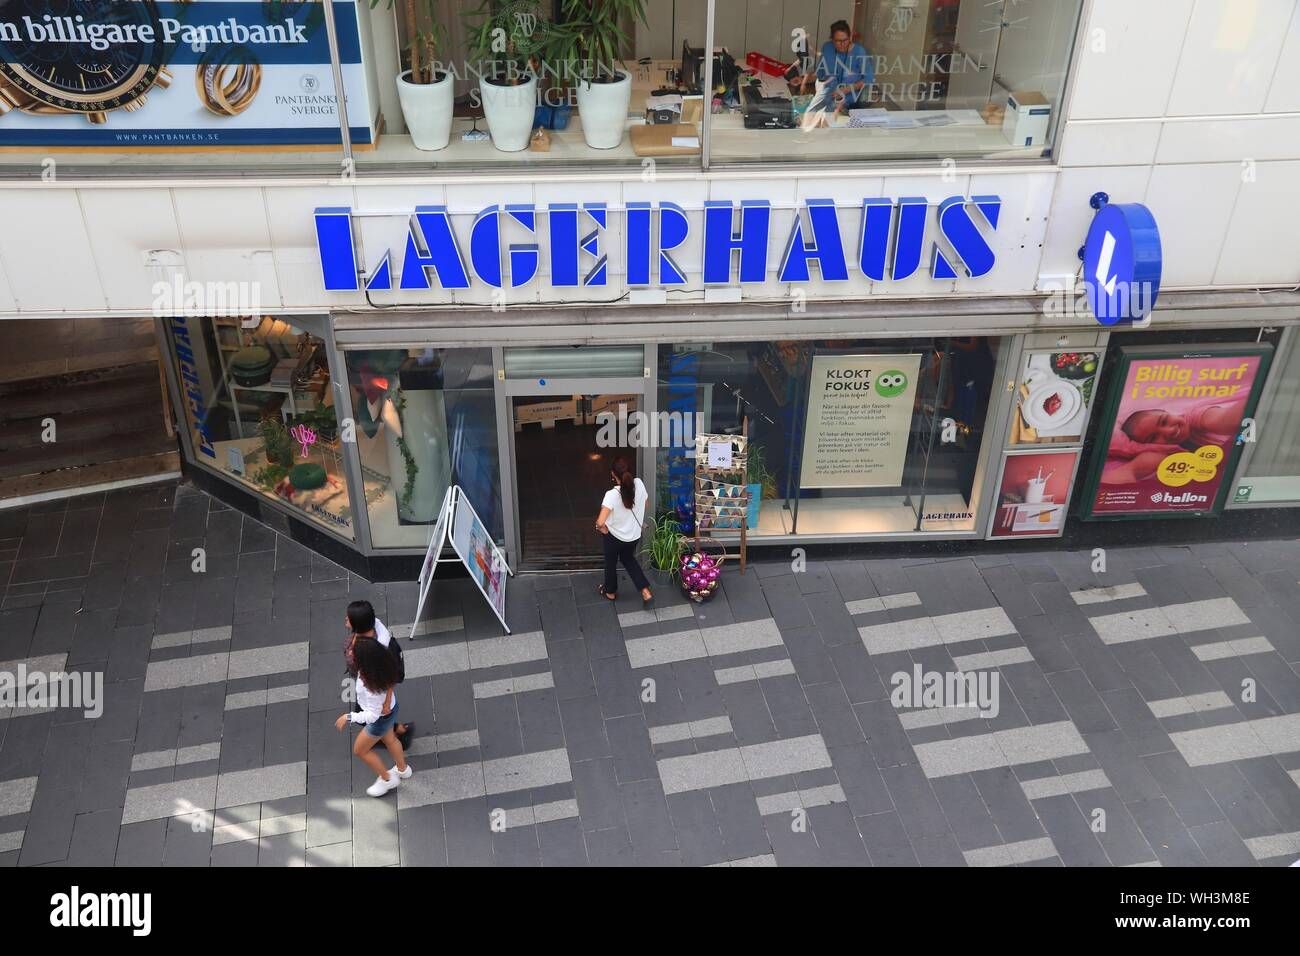 STOCKHOLM, SWEDEN - AUGUST 23, 2018: People walk by Lagerhaus in Drottninggatan street, Stockholm. Drottninggatan is one of most recognizable shopping Stock Photo